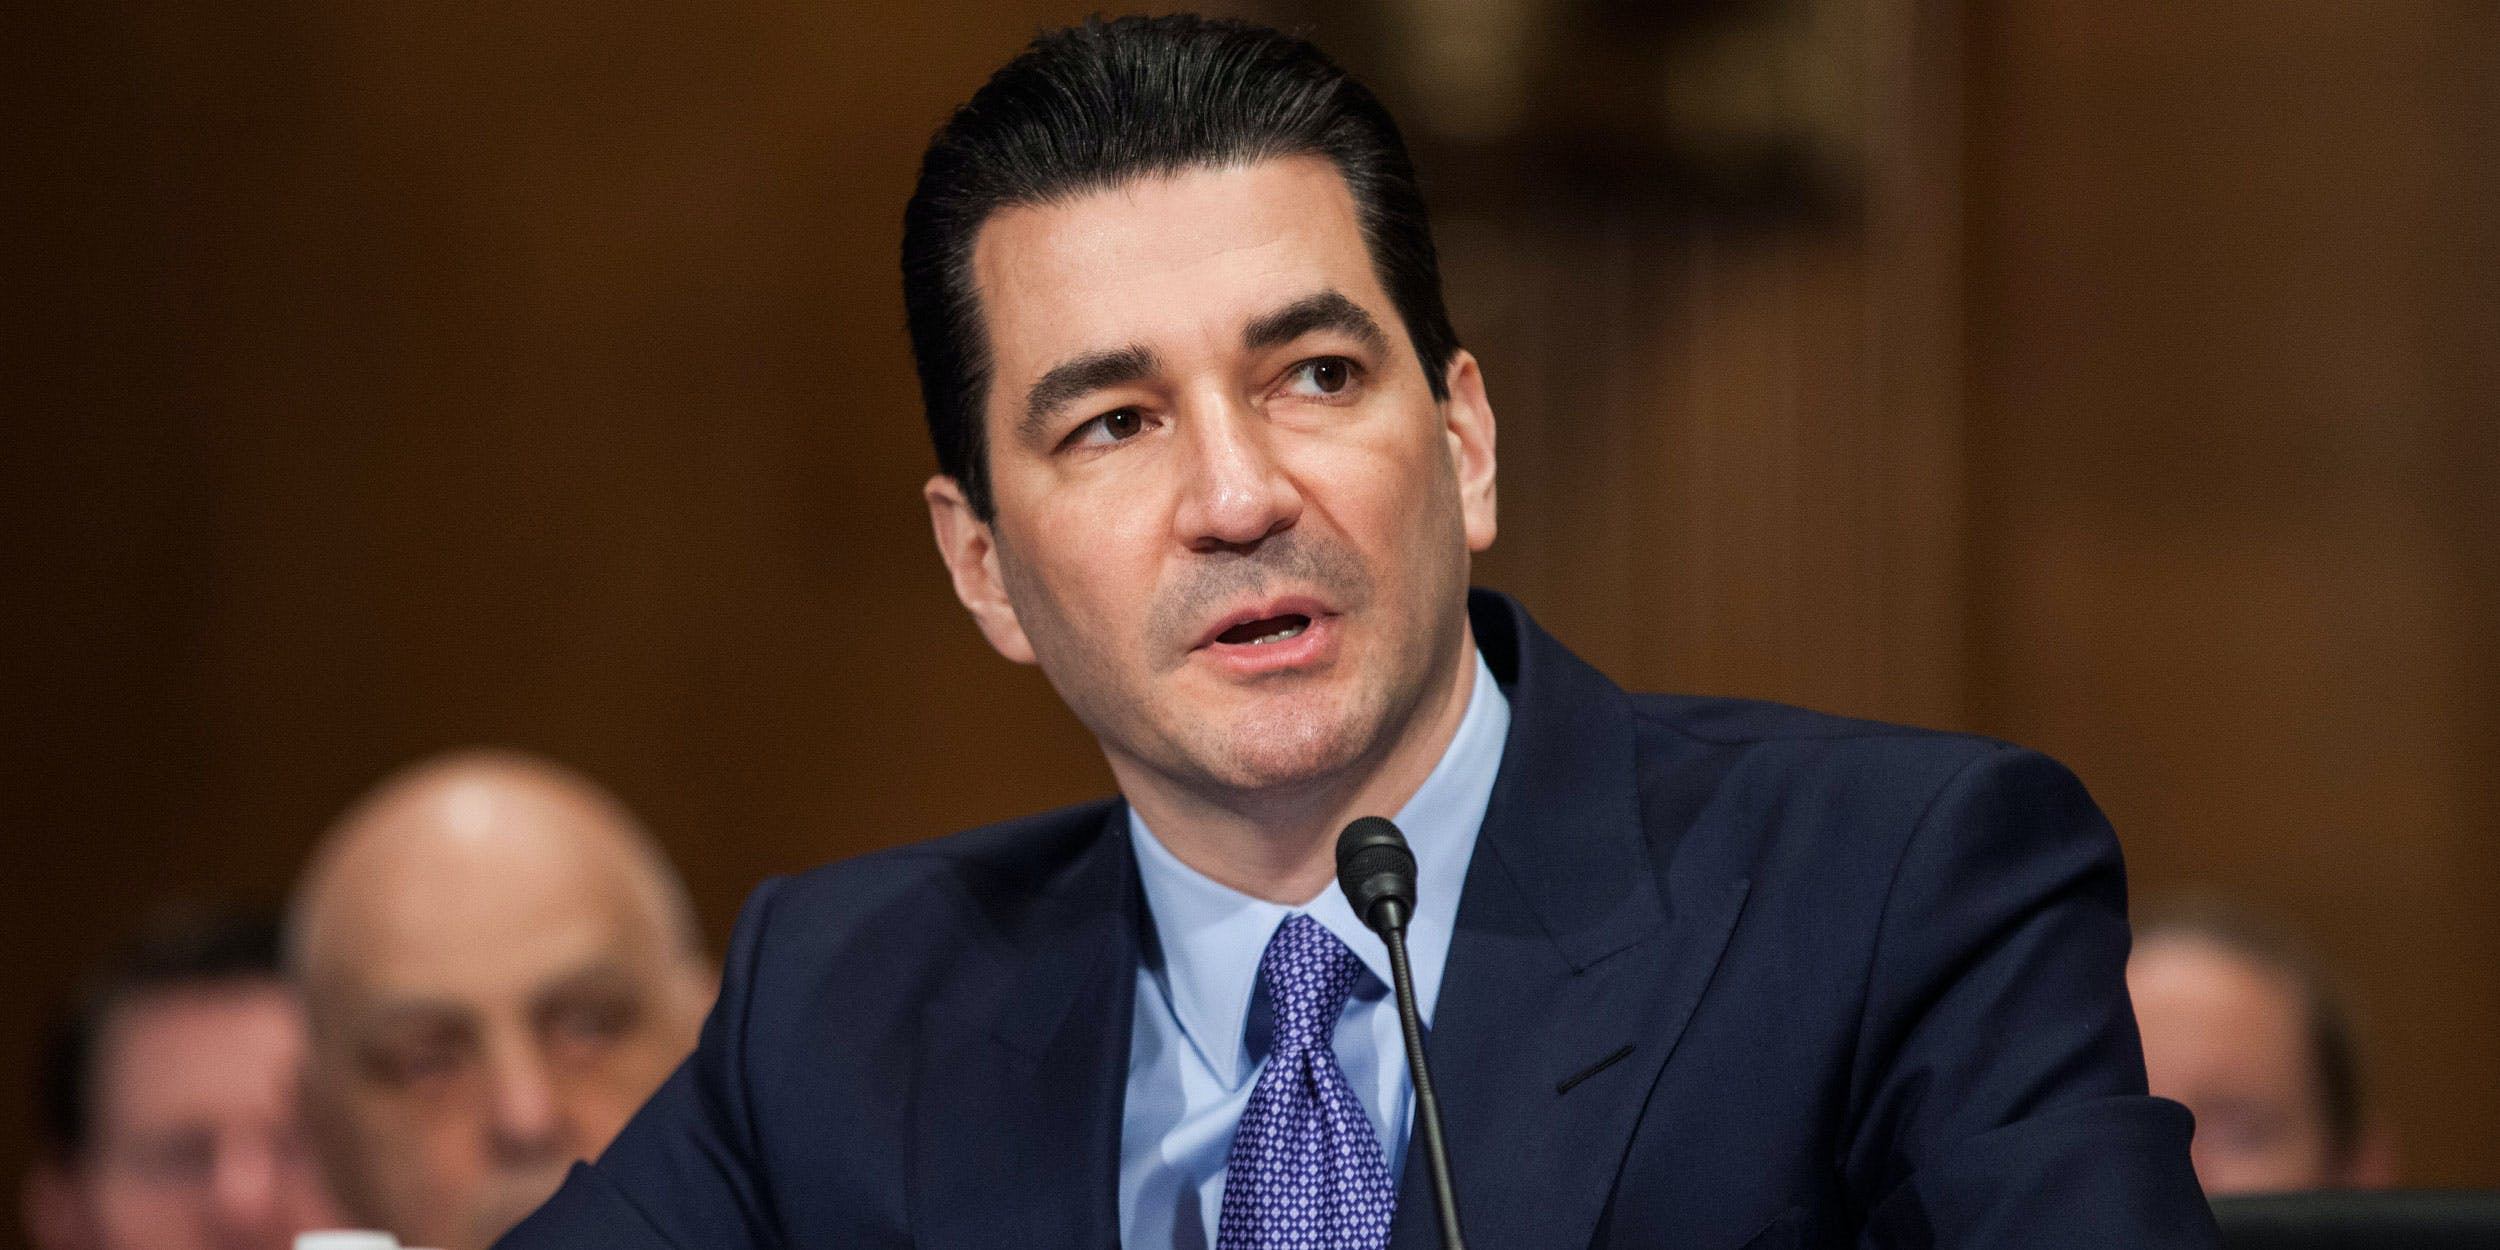 FDA Scott Gottlieb testifies during a Senate hearing